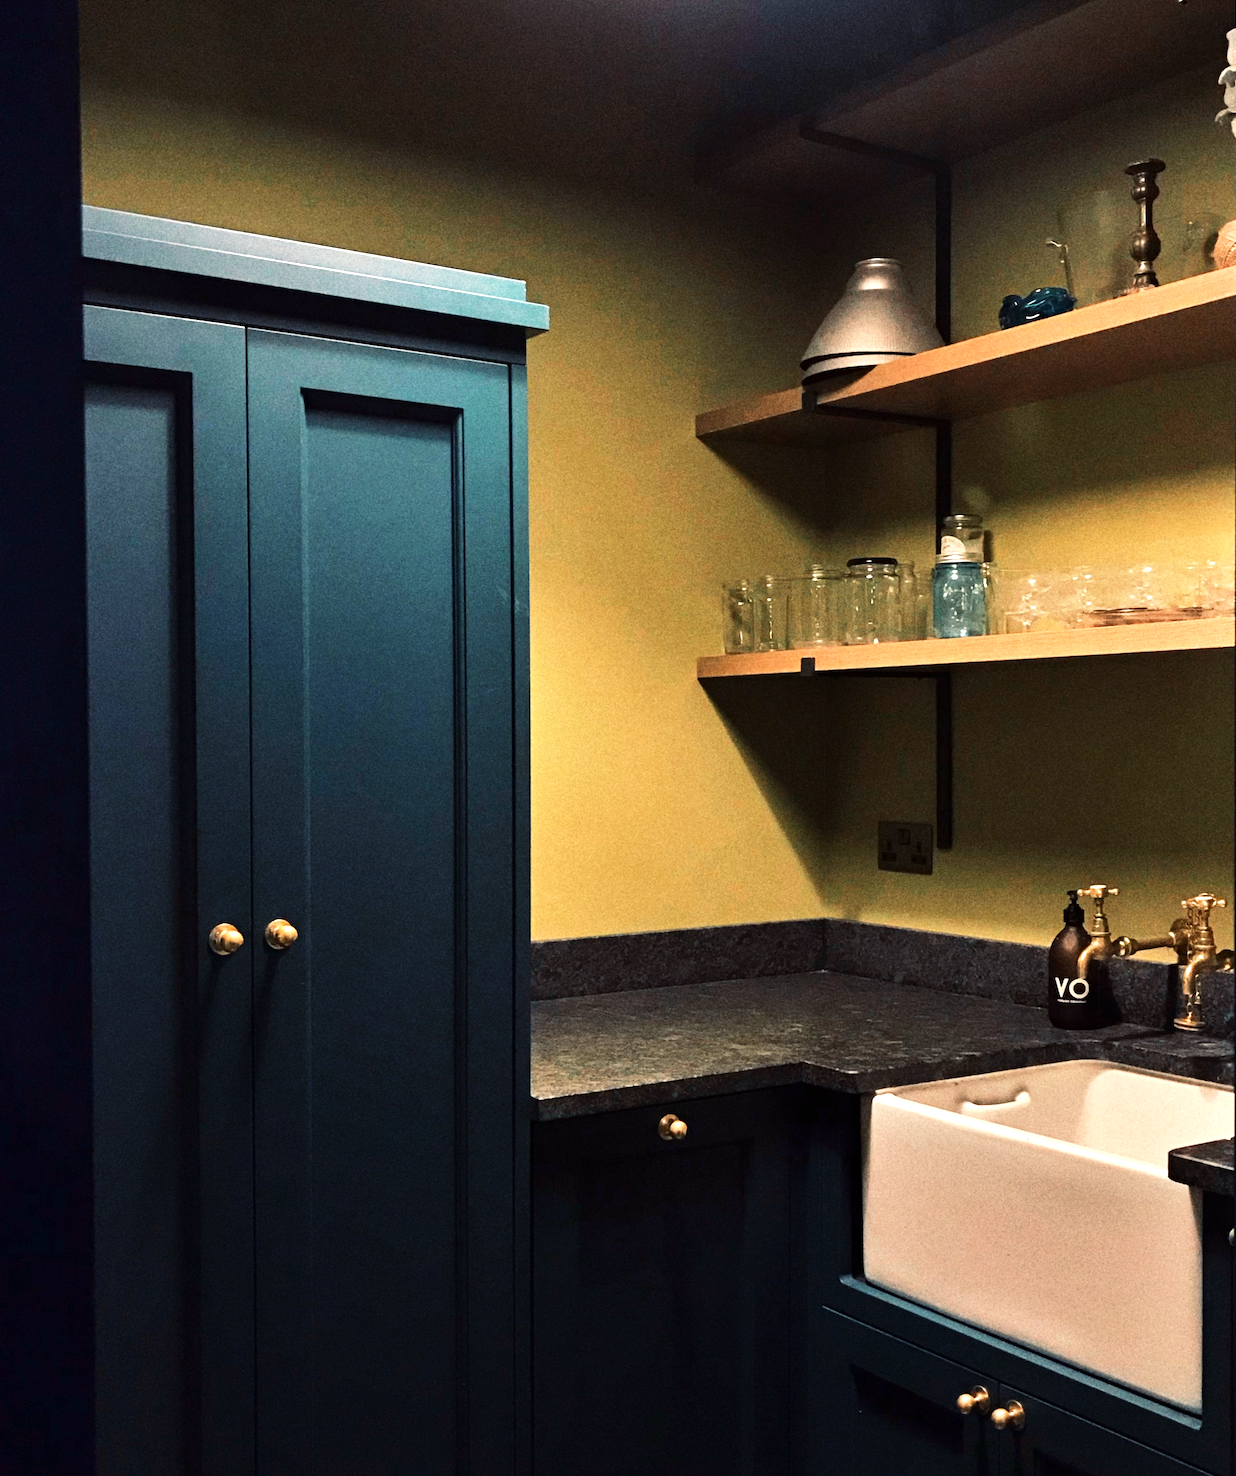 Laundry painted mustard, with dark blue cabinetry, brushed black granite, cabinetry concealing all appliances and storage, with overhead drying racks, butler sink, and shelving for flower vases